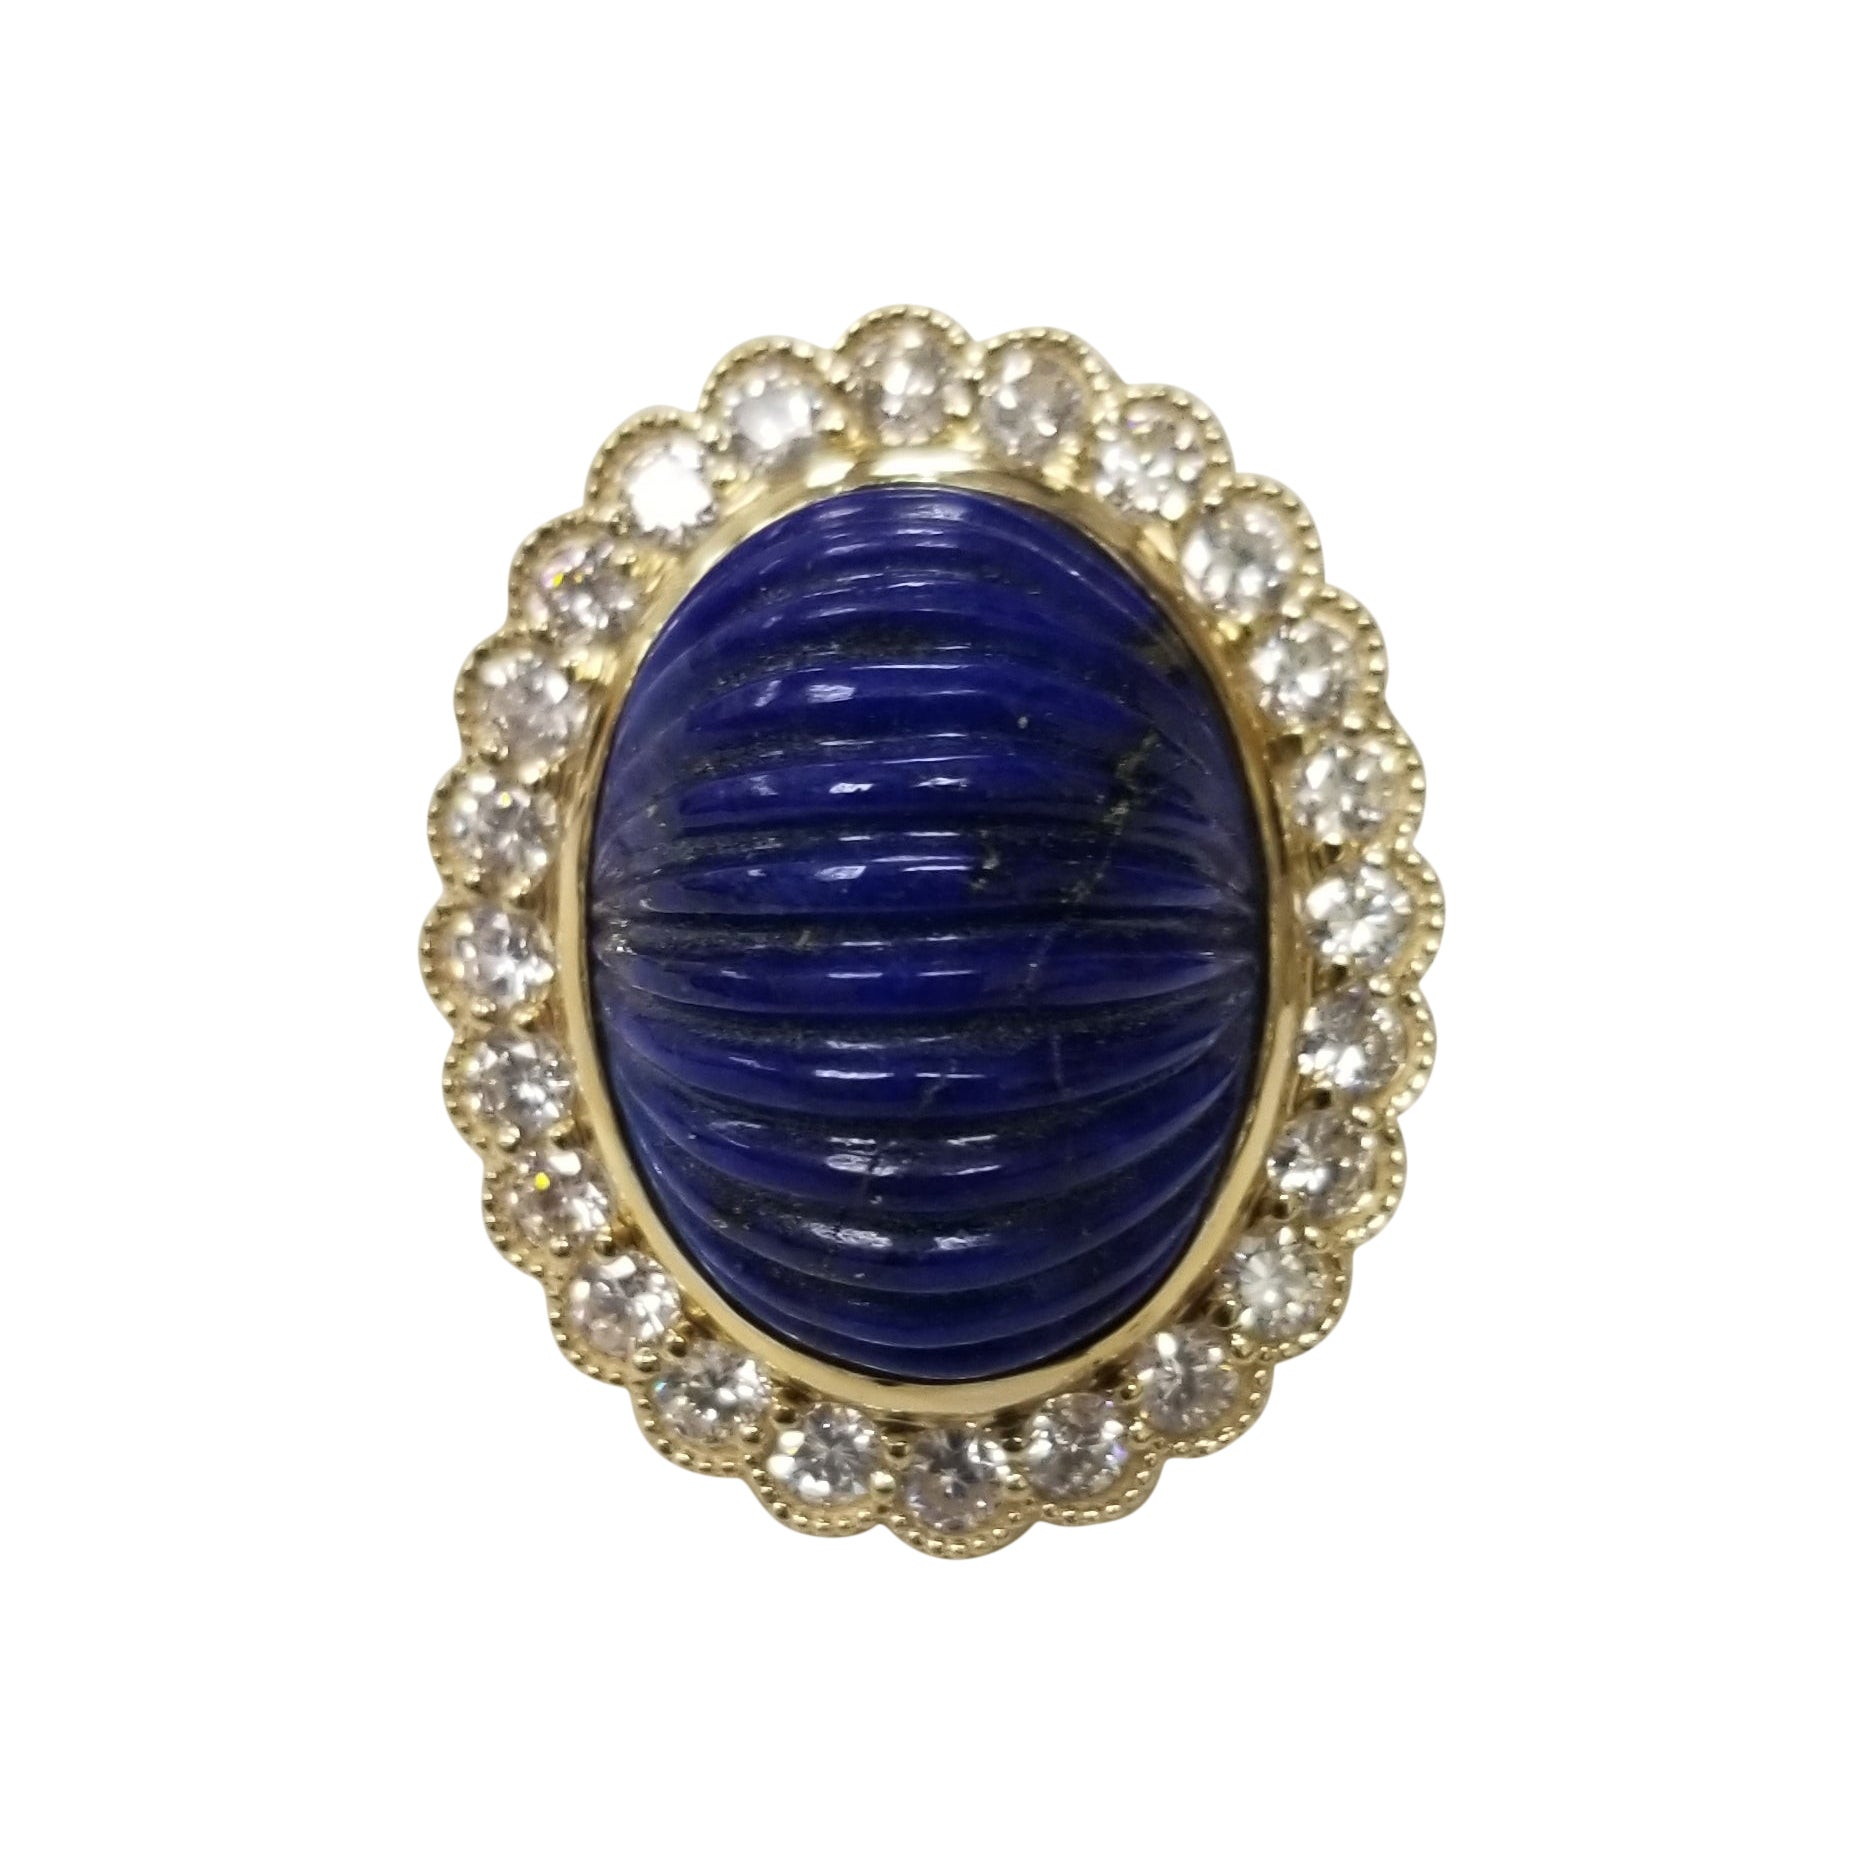 14 Karat Yellow Gold Carved Lapis Lazuli and Diamond Ring